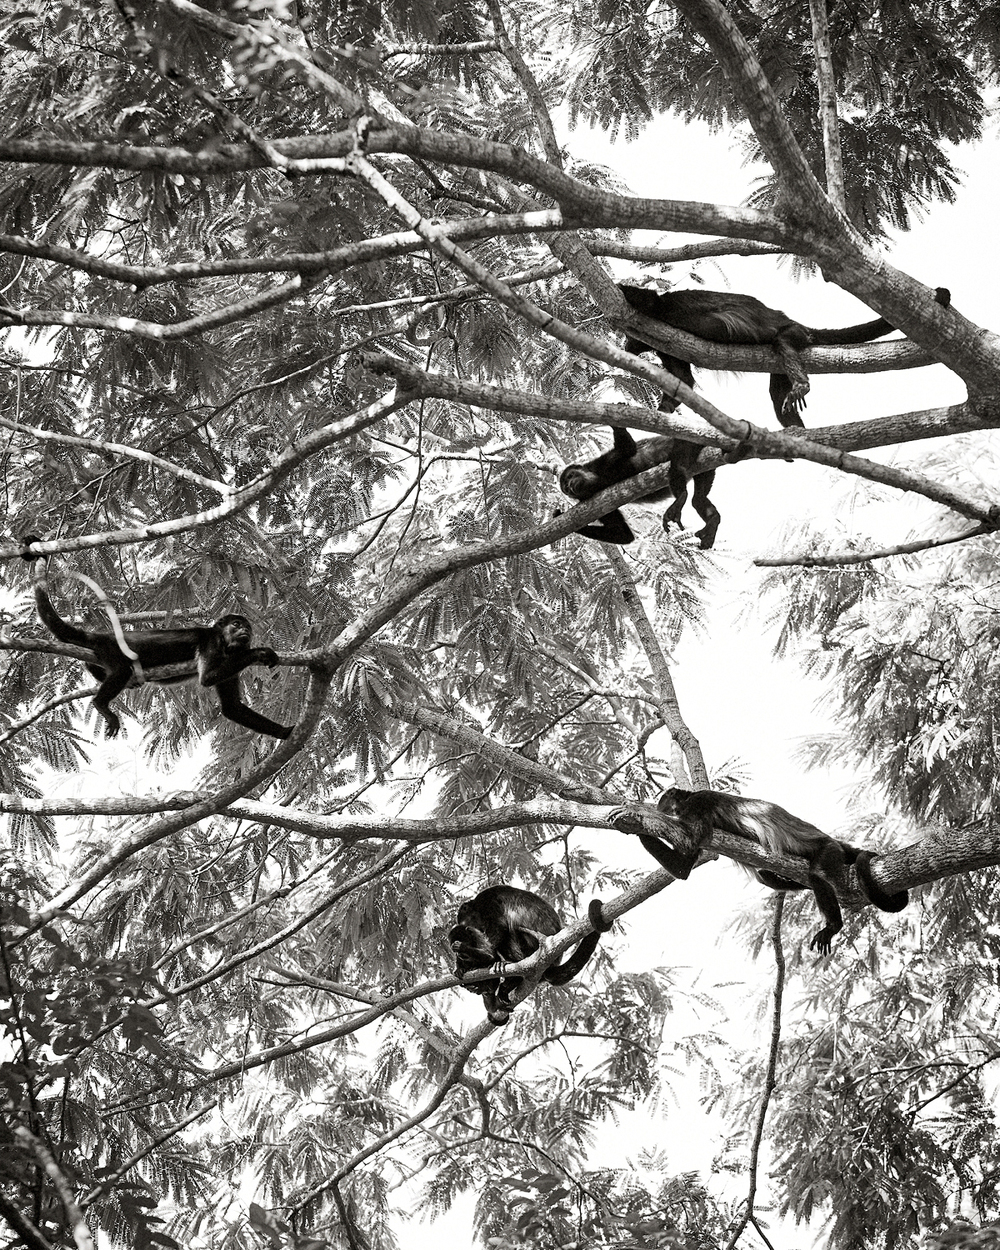 TROOP OF HOWLER MONKEYS ABOVE ROOM 18 AT HARBOR REEF SURF RESORT